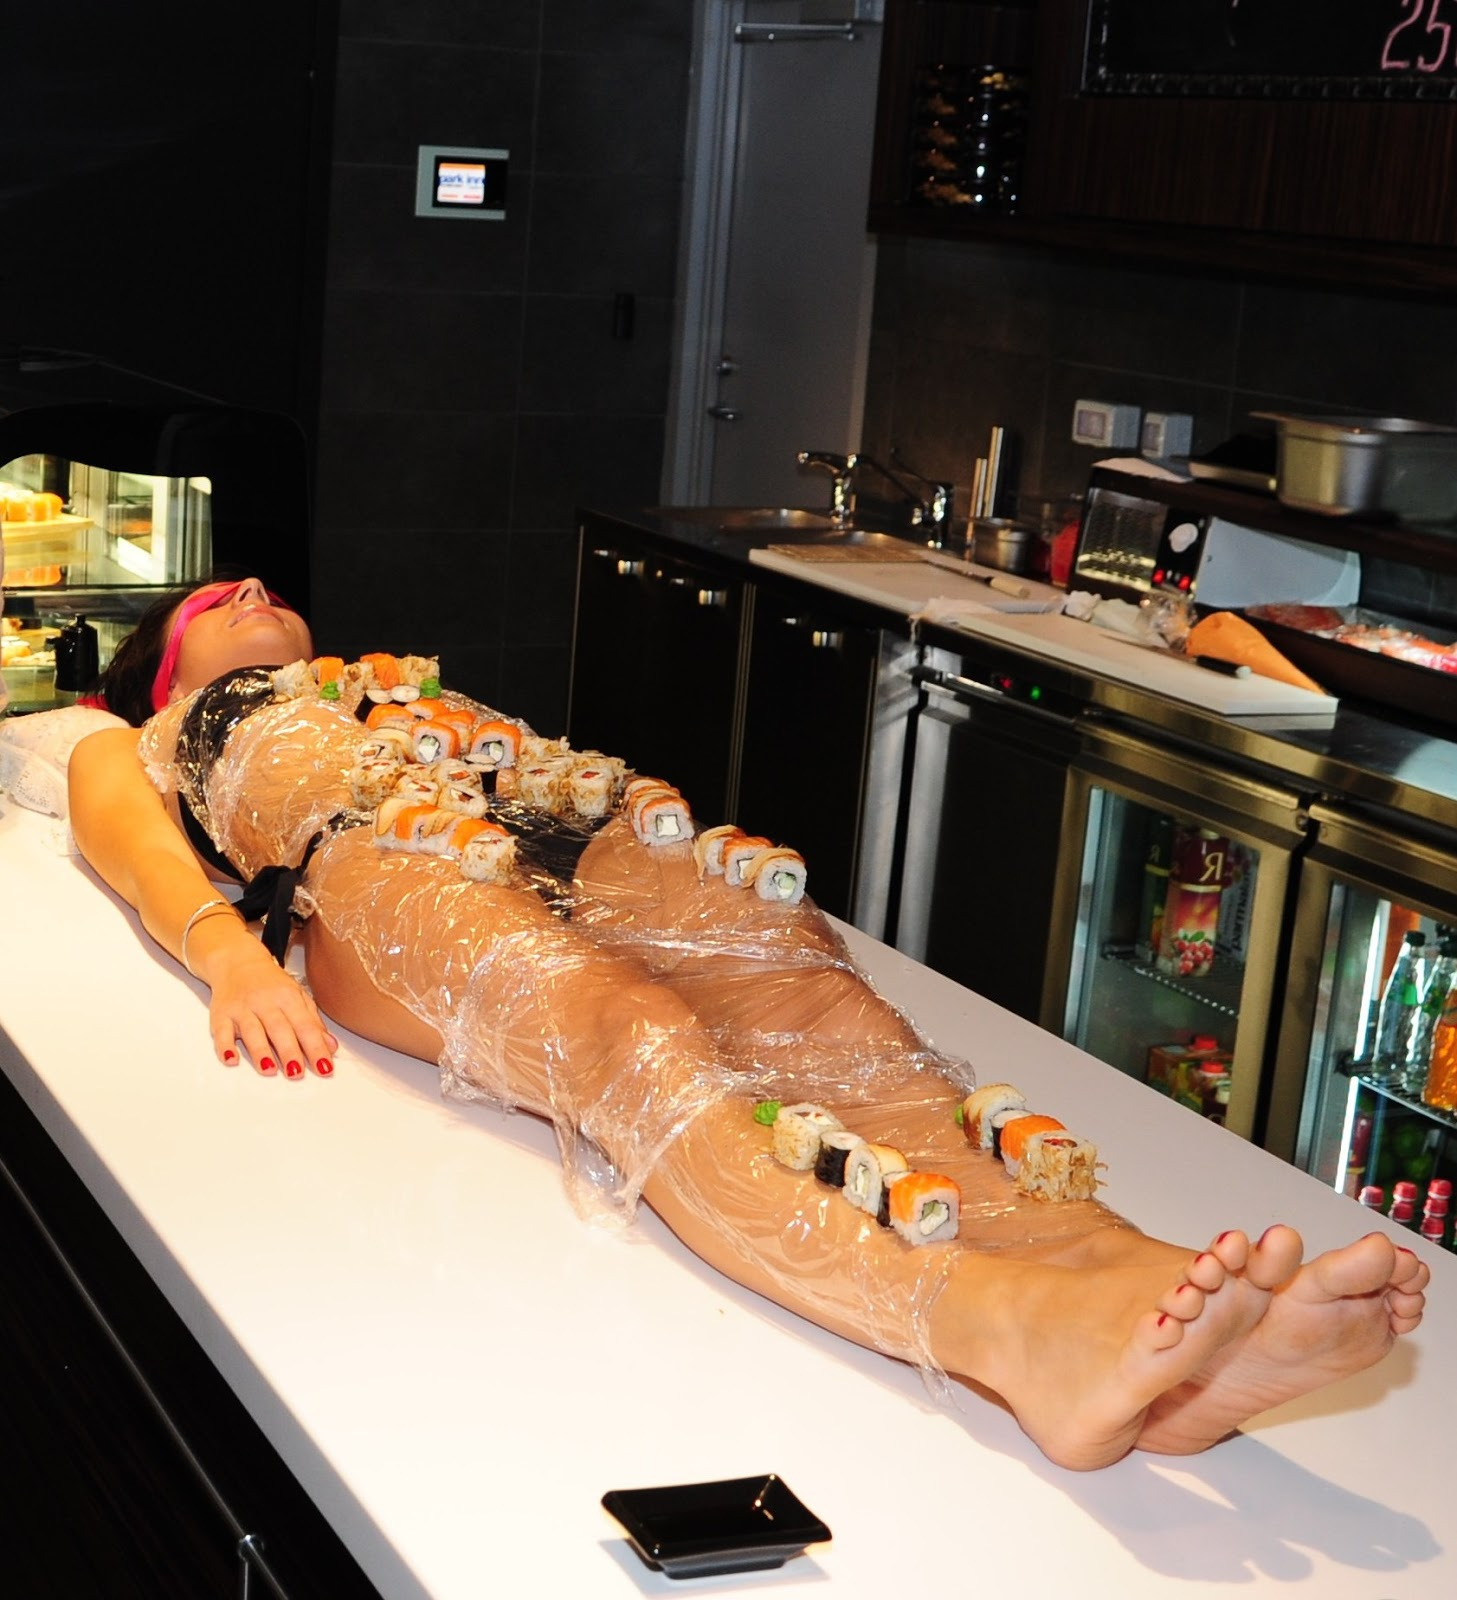 Nyotaimori (Naked Body Sushi)